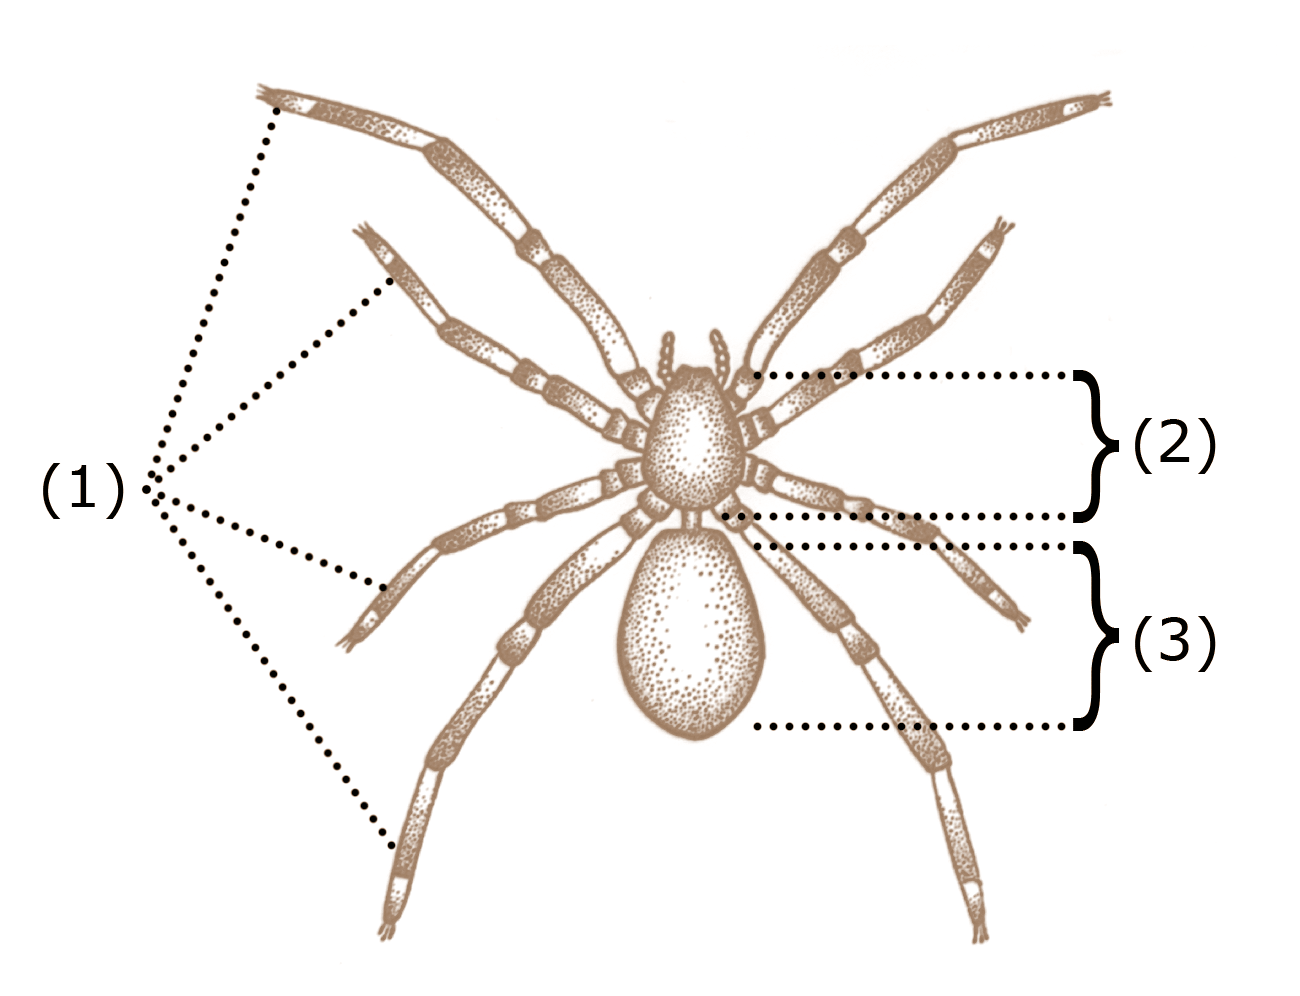 Are spiders insects, Spider anatomy